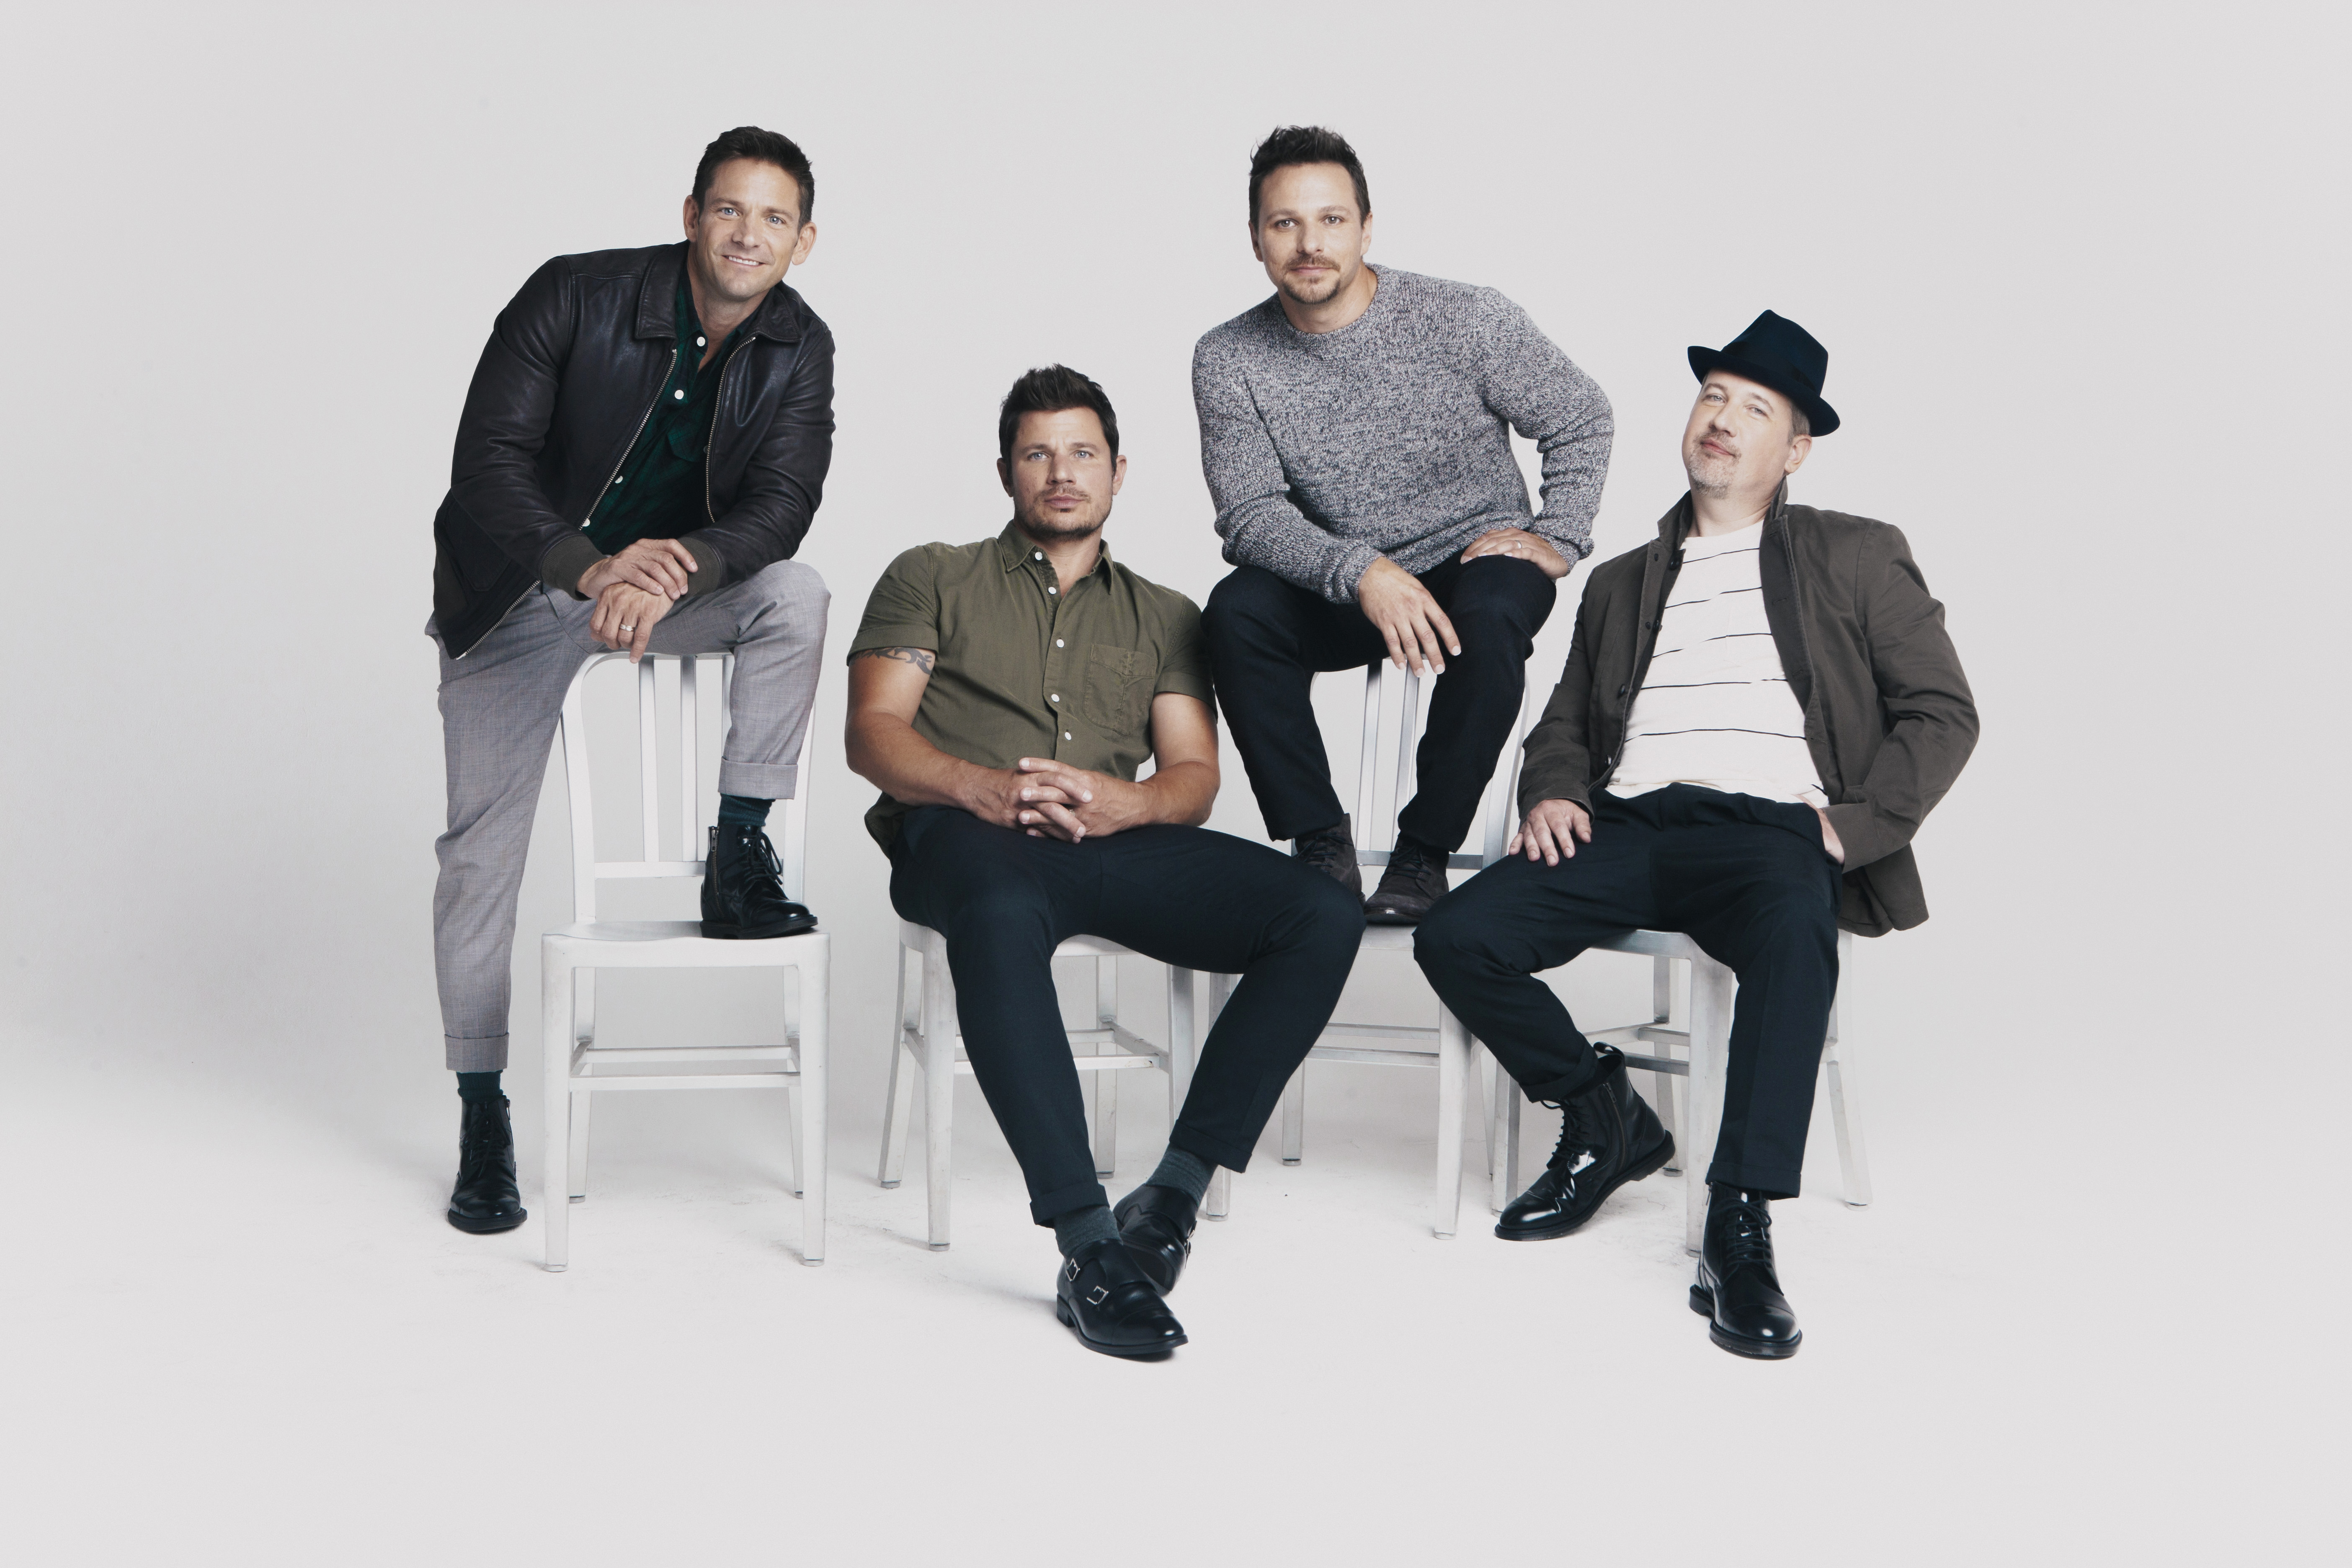 98 Degrees - Let It Snow Press Photo by Elias Tahan